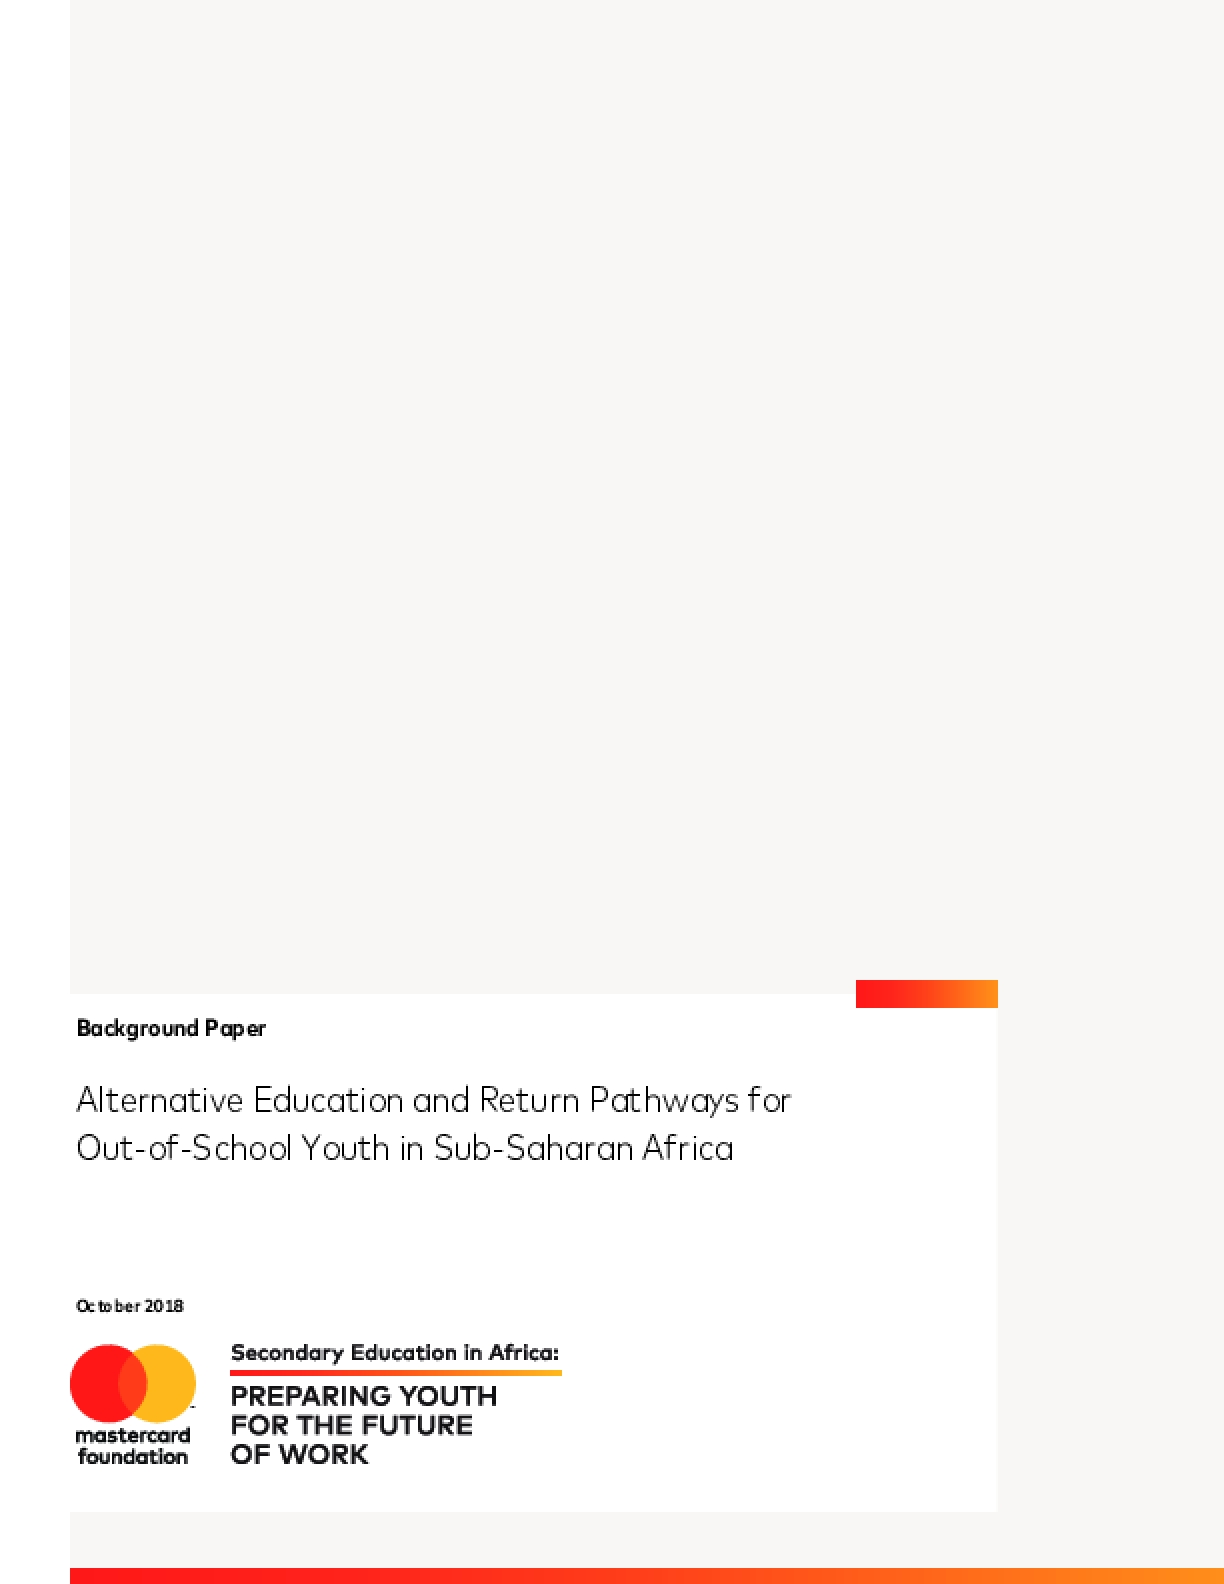 Alternative Education and Return Pathways for Out-of-School Youth in Sub-Saharan Africa